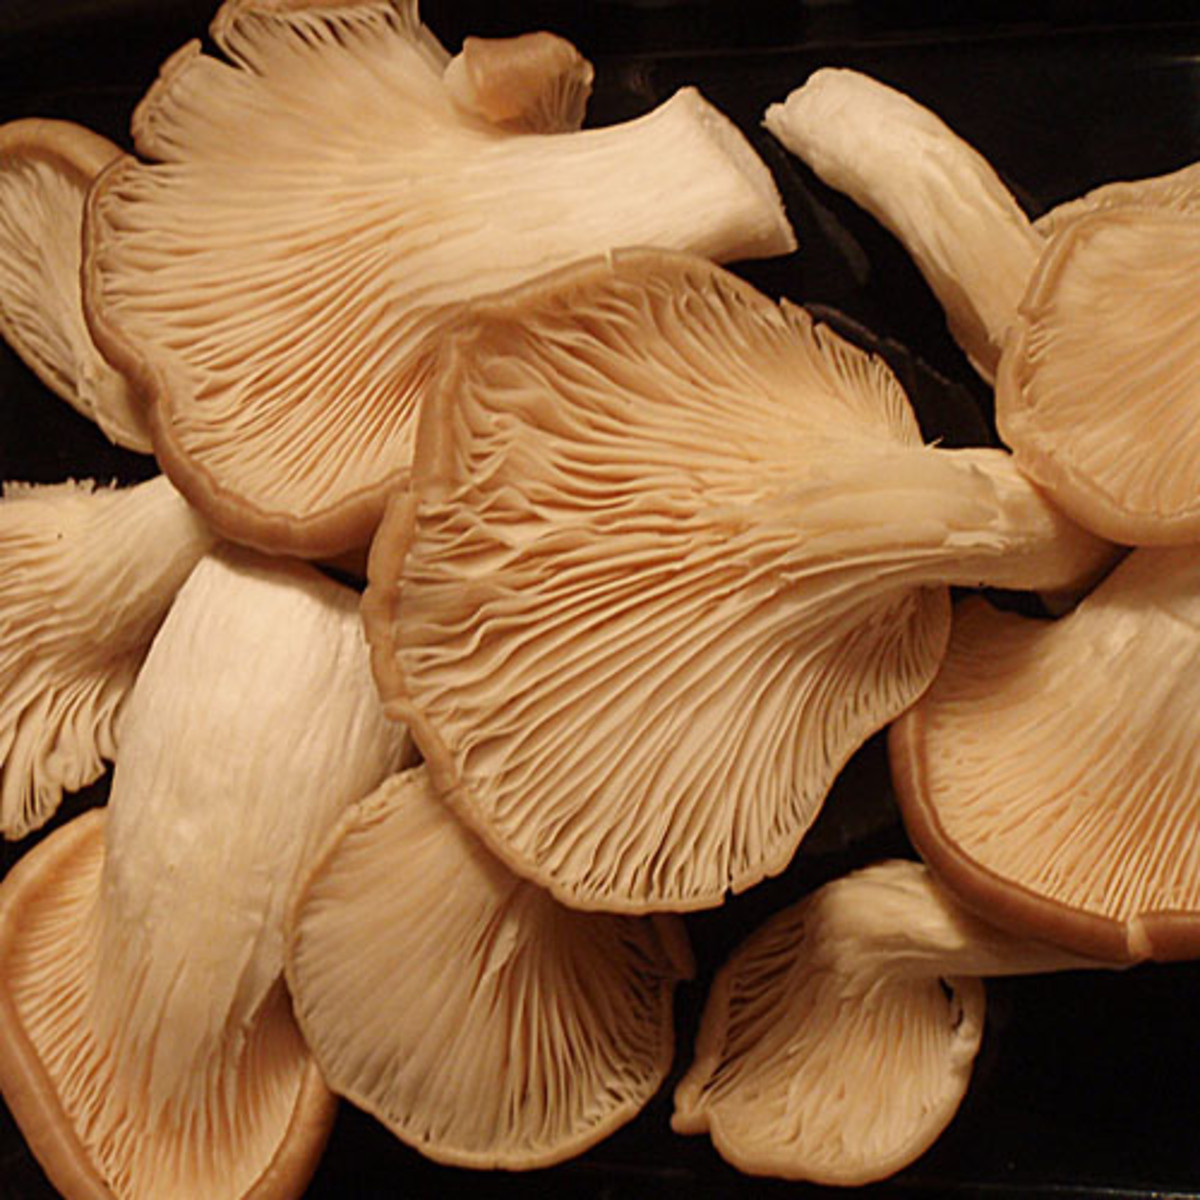 What Are the Different Types of Edible Mushrooms and How Do You Use Them?